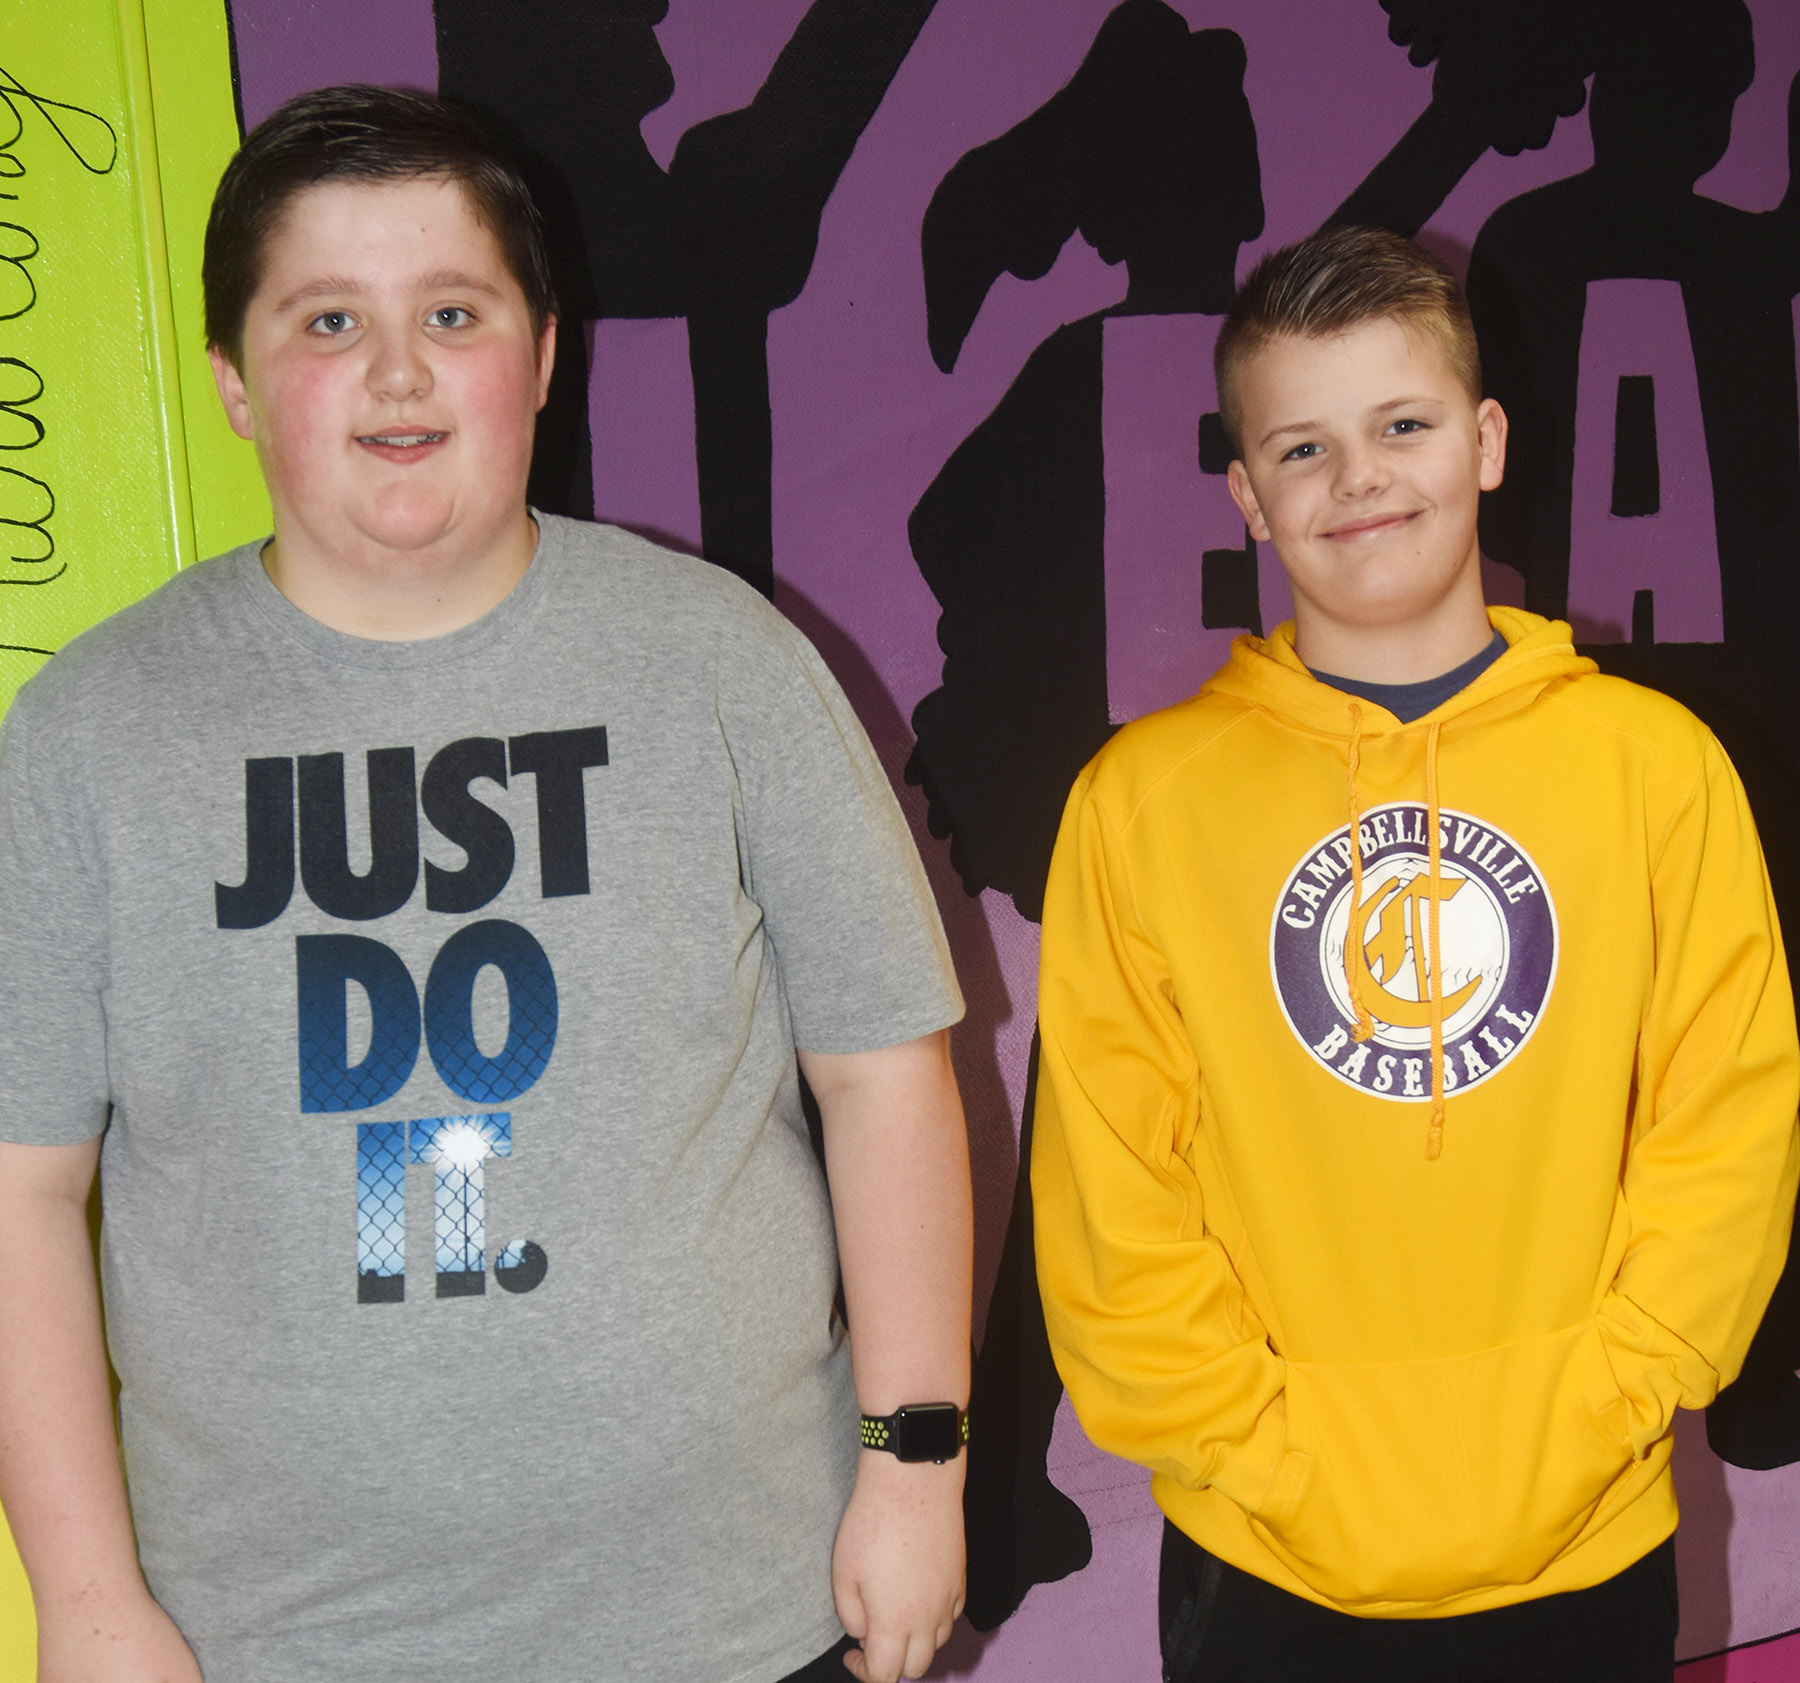 Campbellsville Middle School recently named its Leaders of the Week for the week of May 7. They are sixth-grader Luke McDonald, at left, and seventh-grader Konner Forbis.